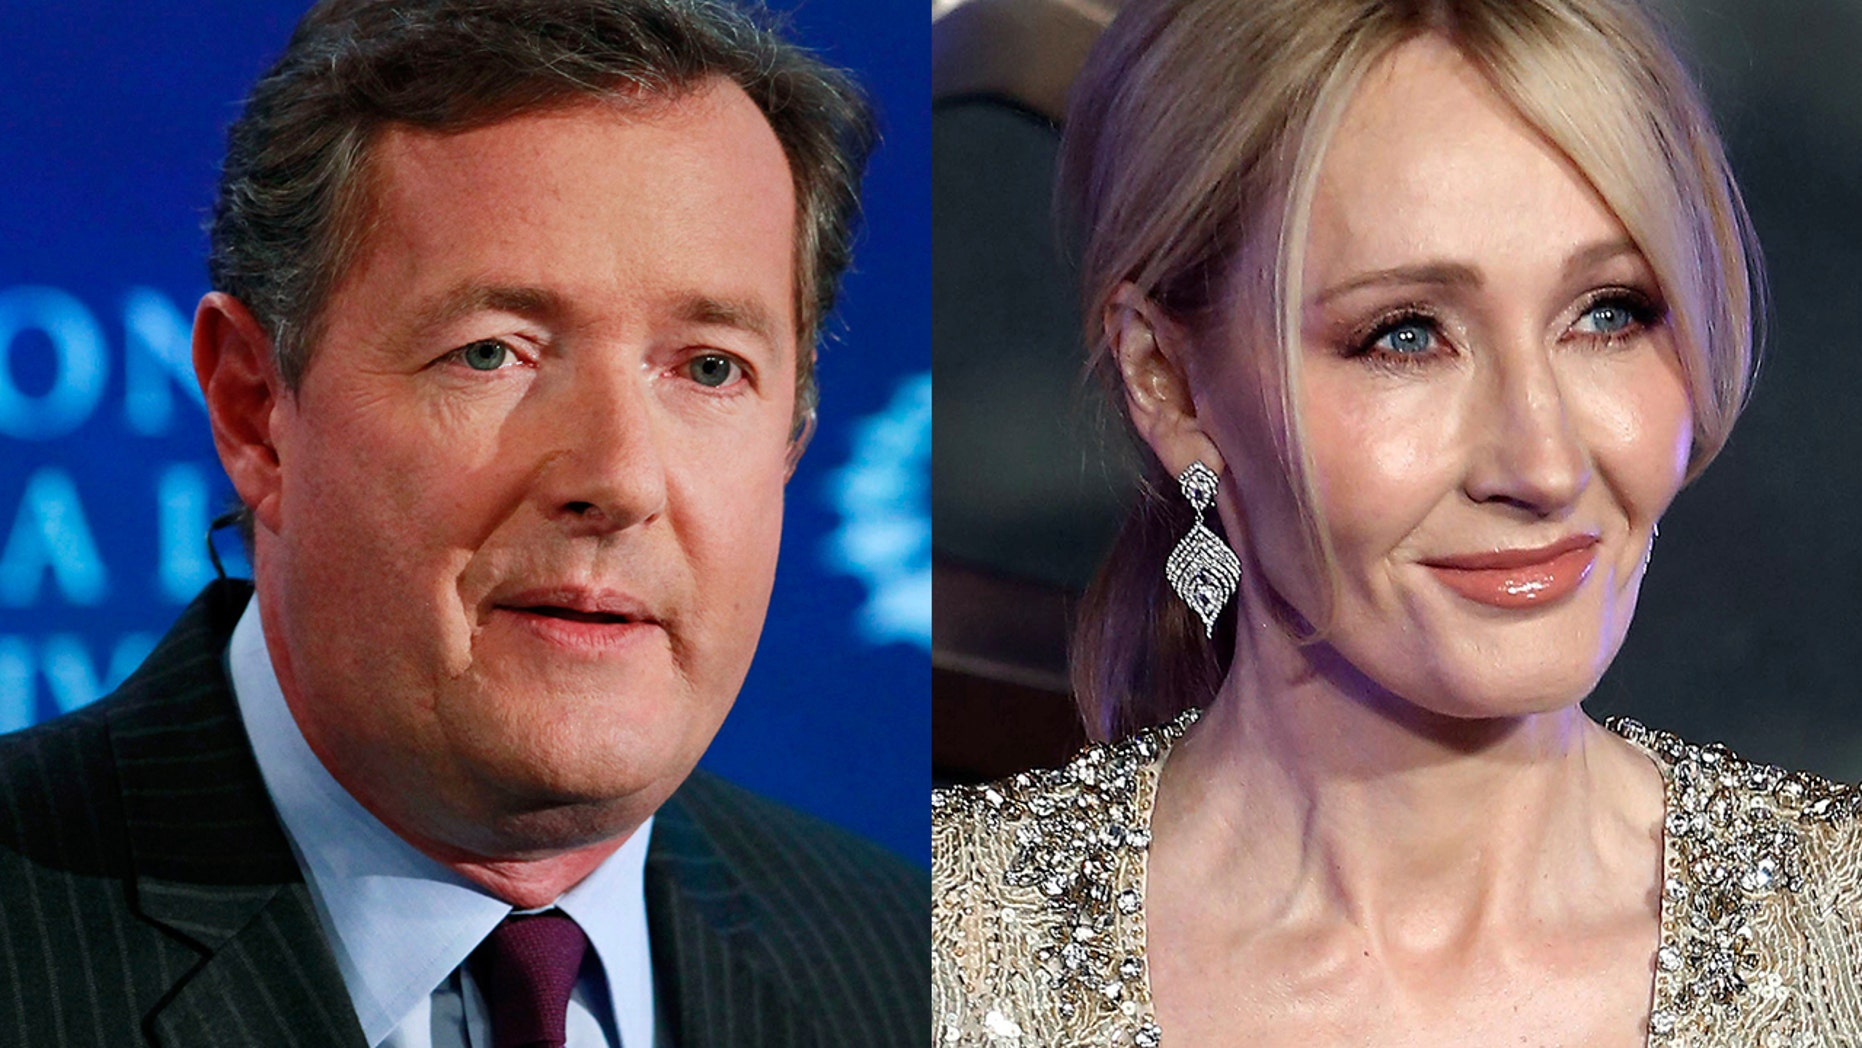 """Piers Morgan (left) called J.K. Rowling (right) a """"disgraceful liar"""" after she accused President Trump of snubbing a wheelchair-bound boy."""